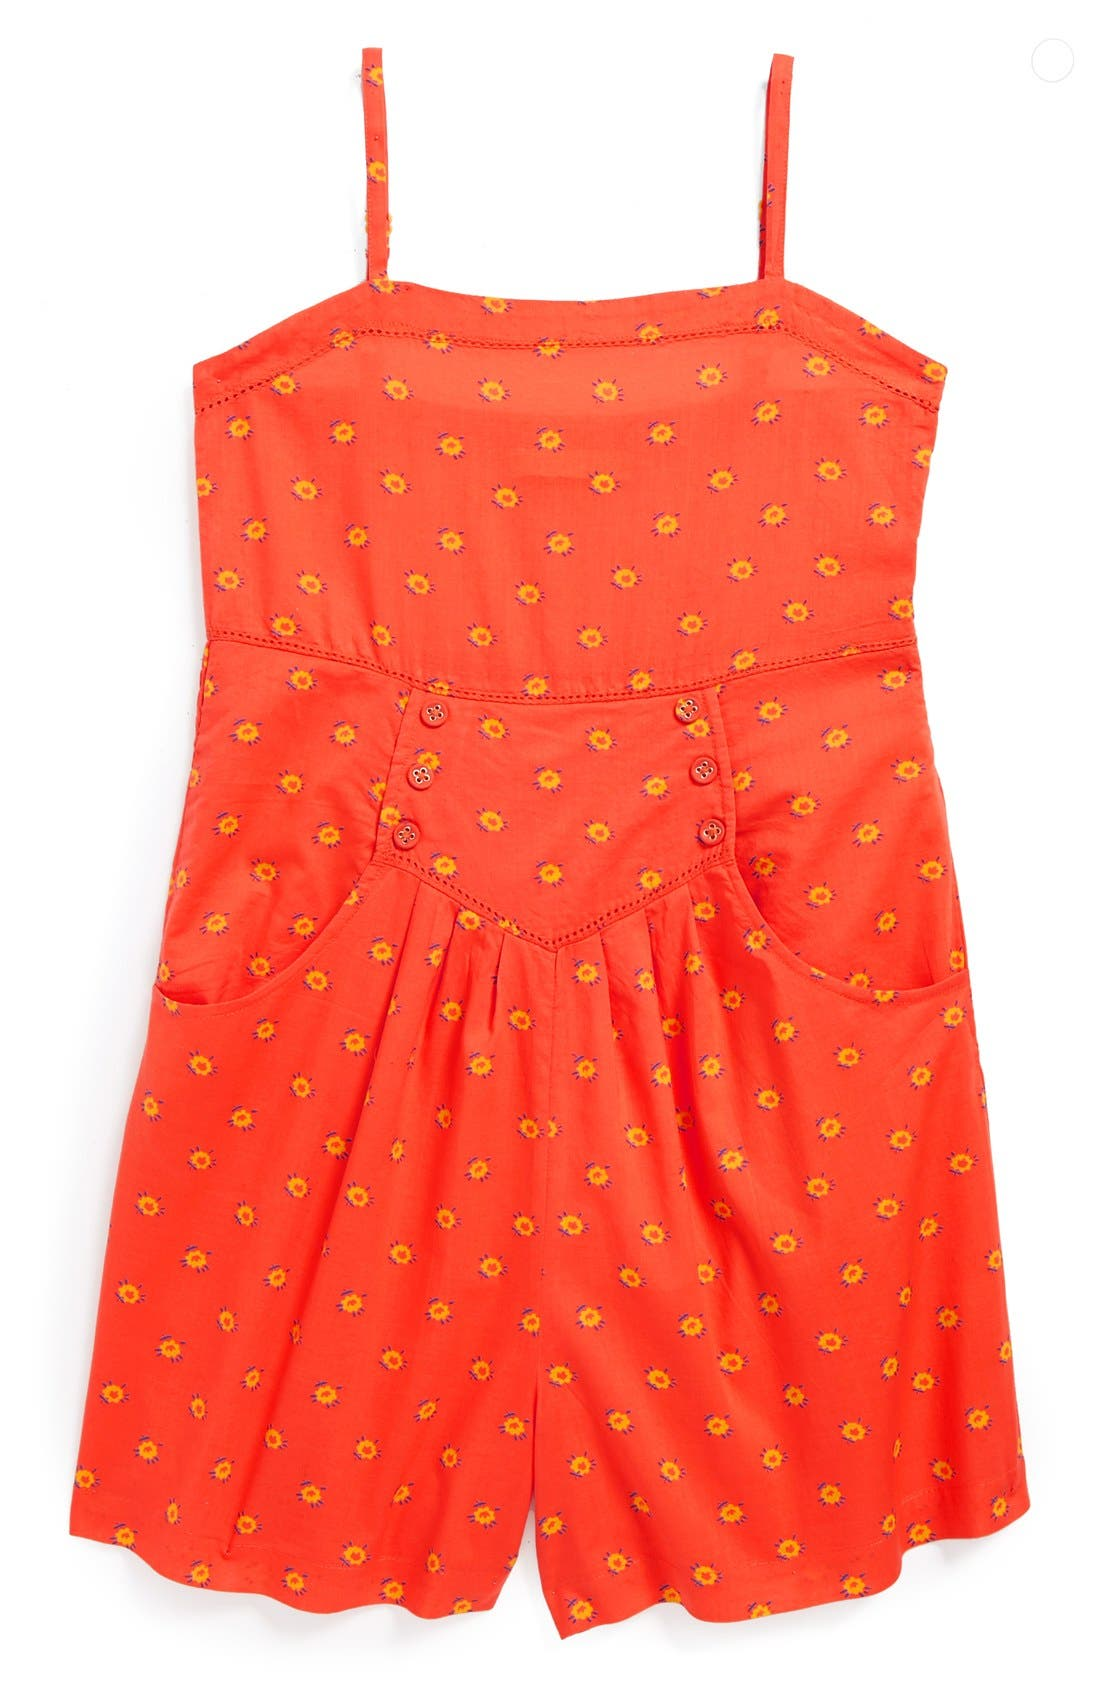 Main Image - Stella McCartney Floral Print Cotton Romper (Toddler Girls, Little Girls & Big Girls)